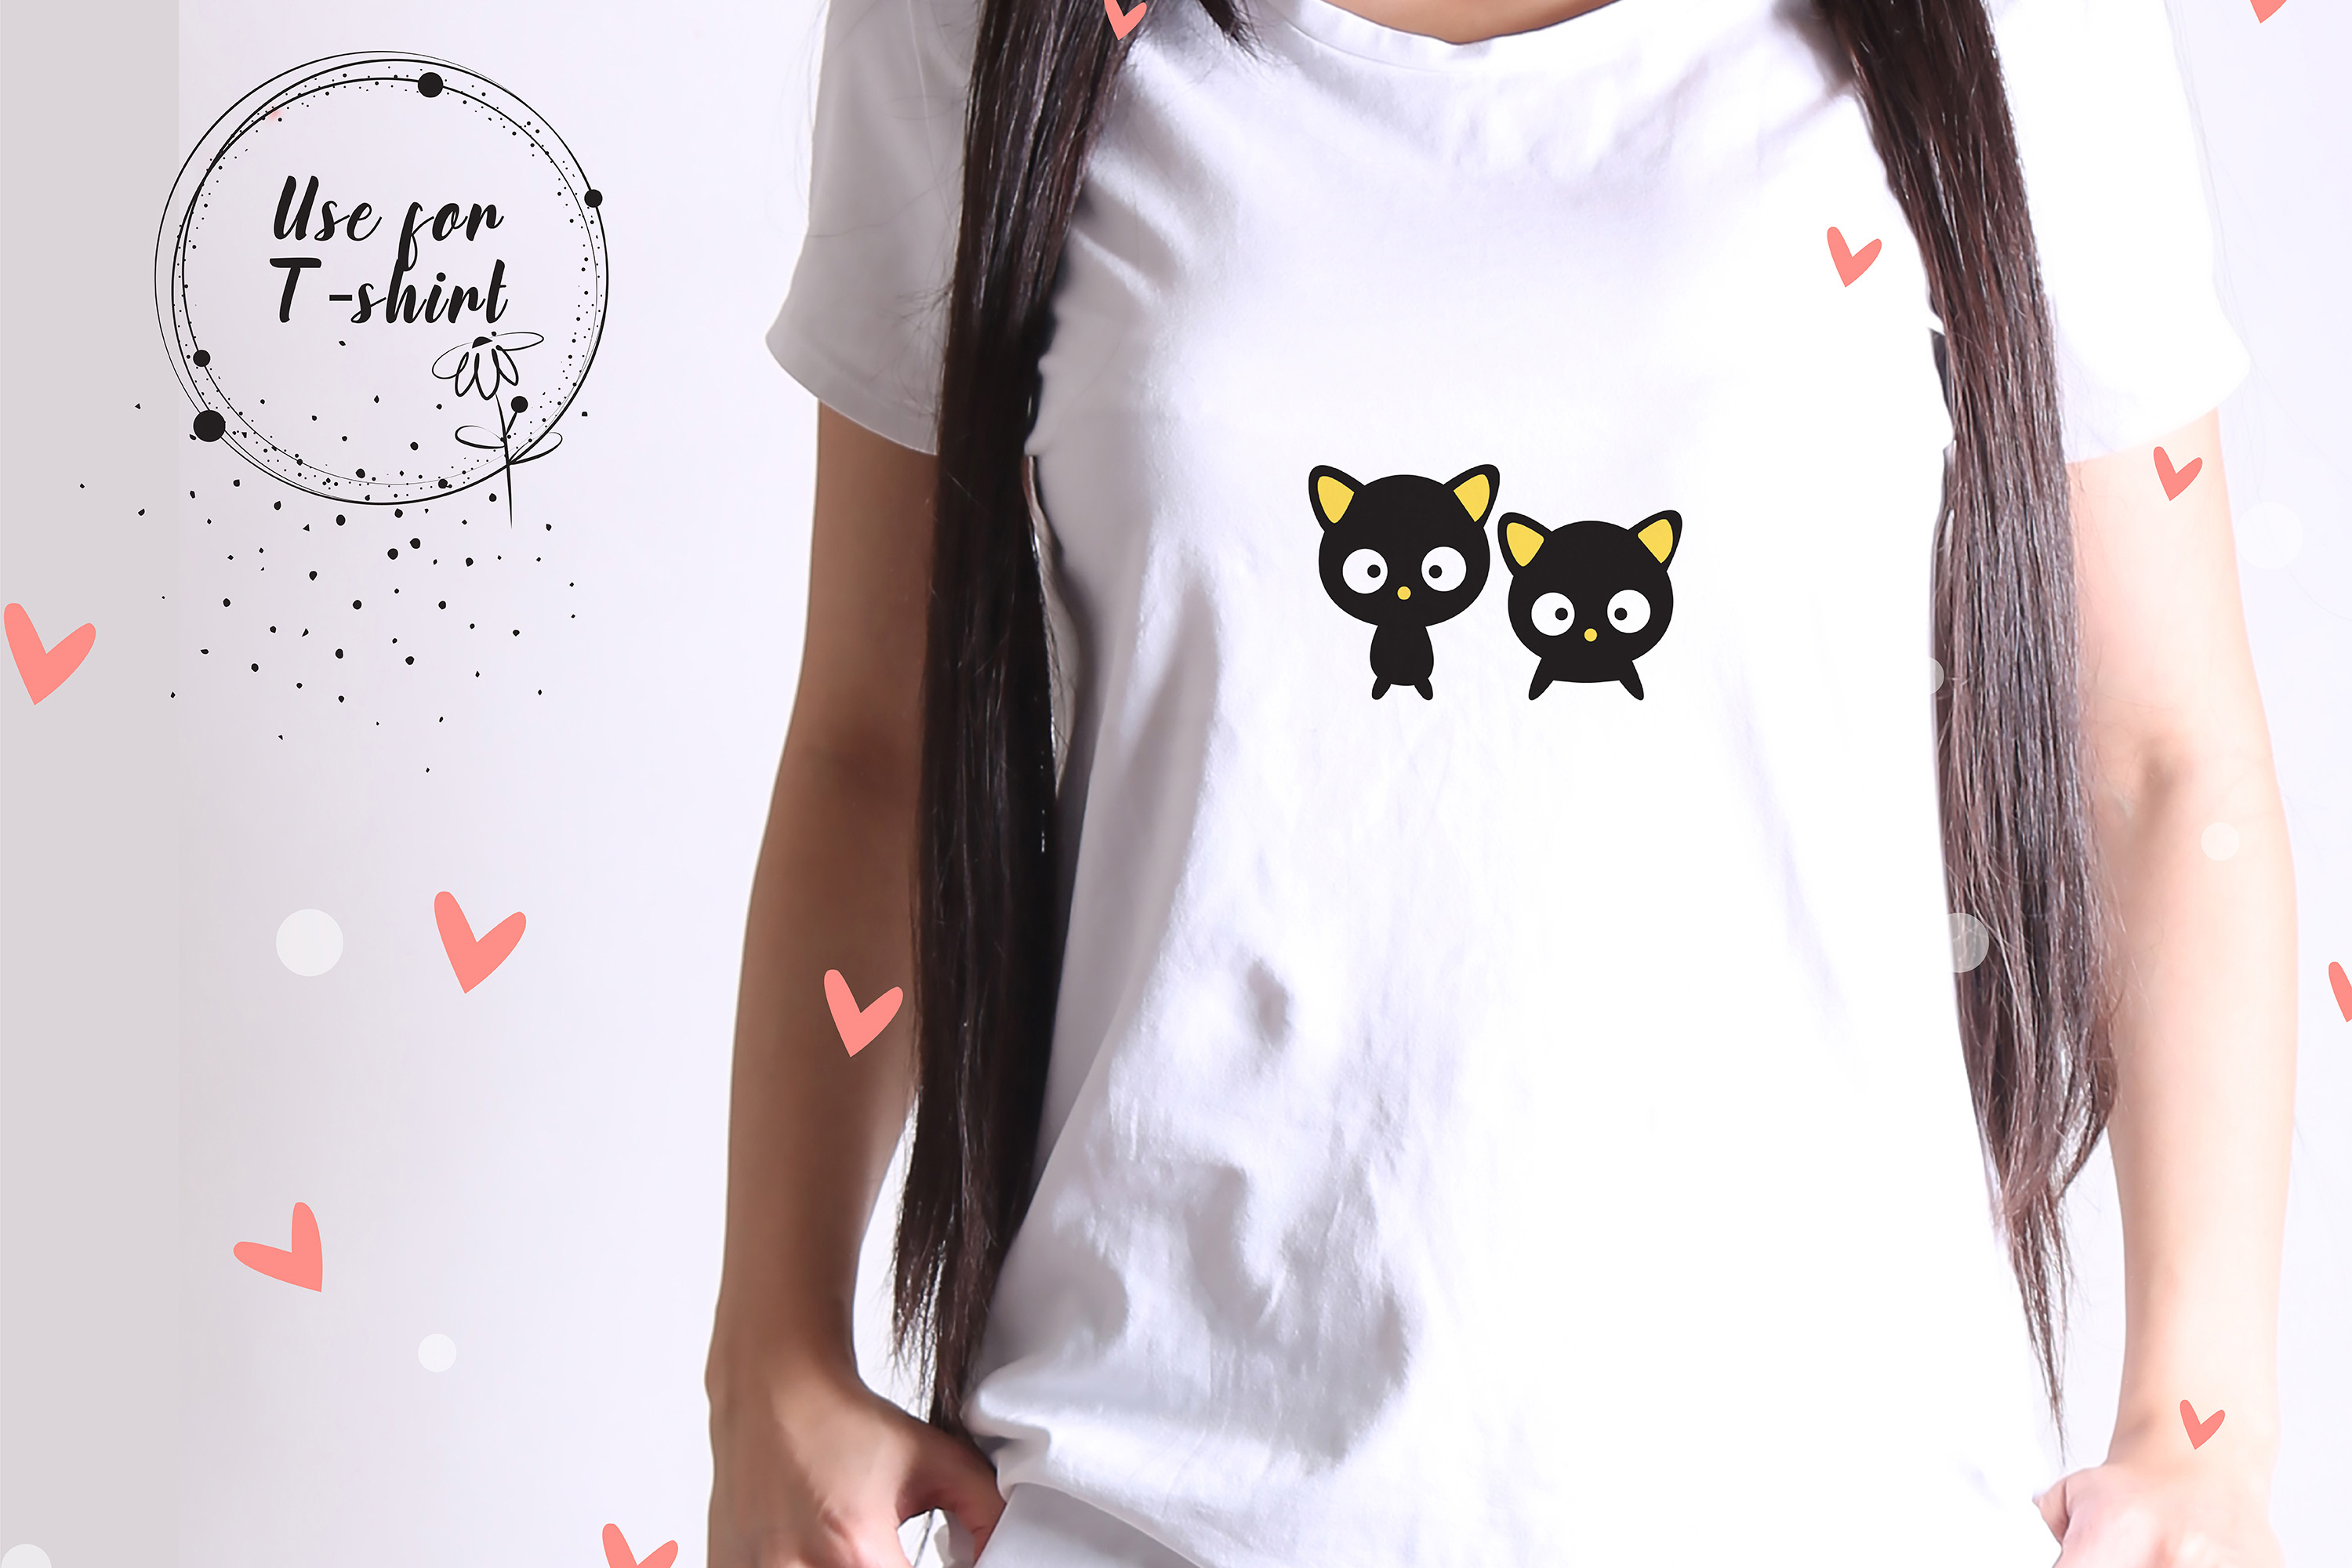 Cute black Cat high res svg, png, eps, jpeg, sticker example image 7